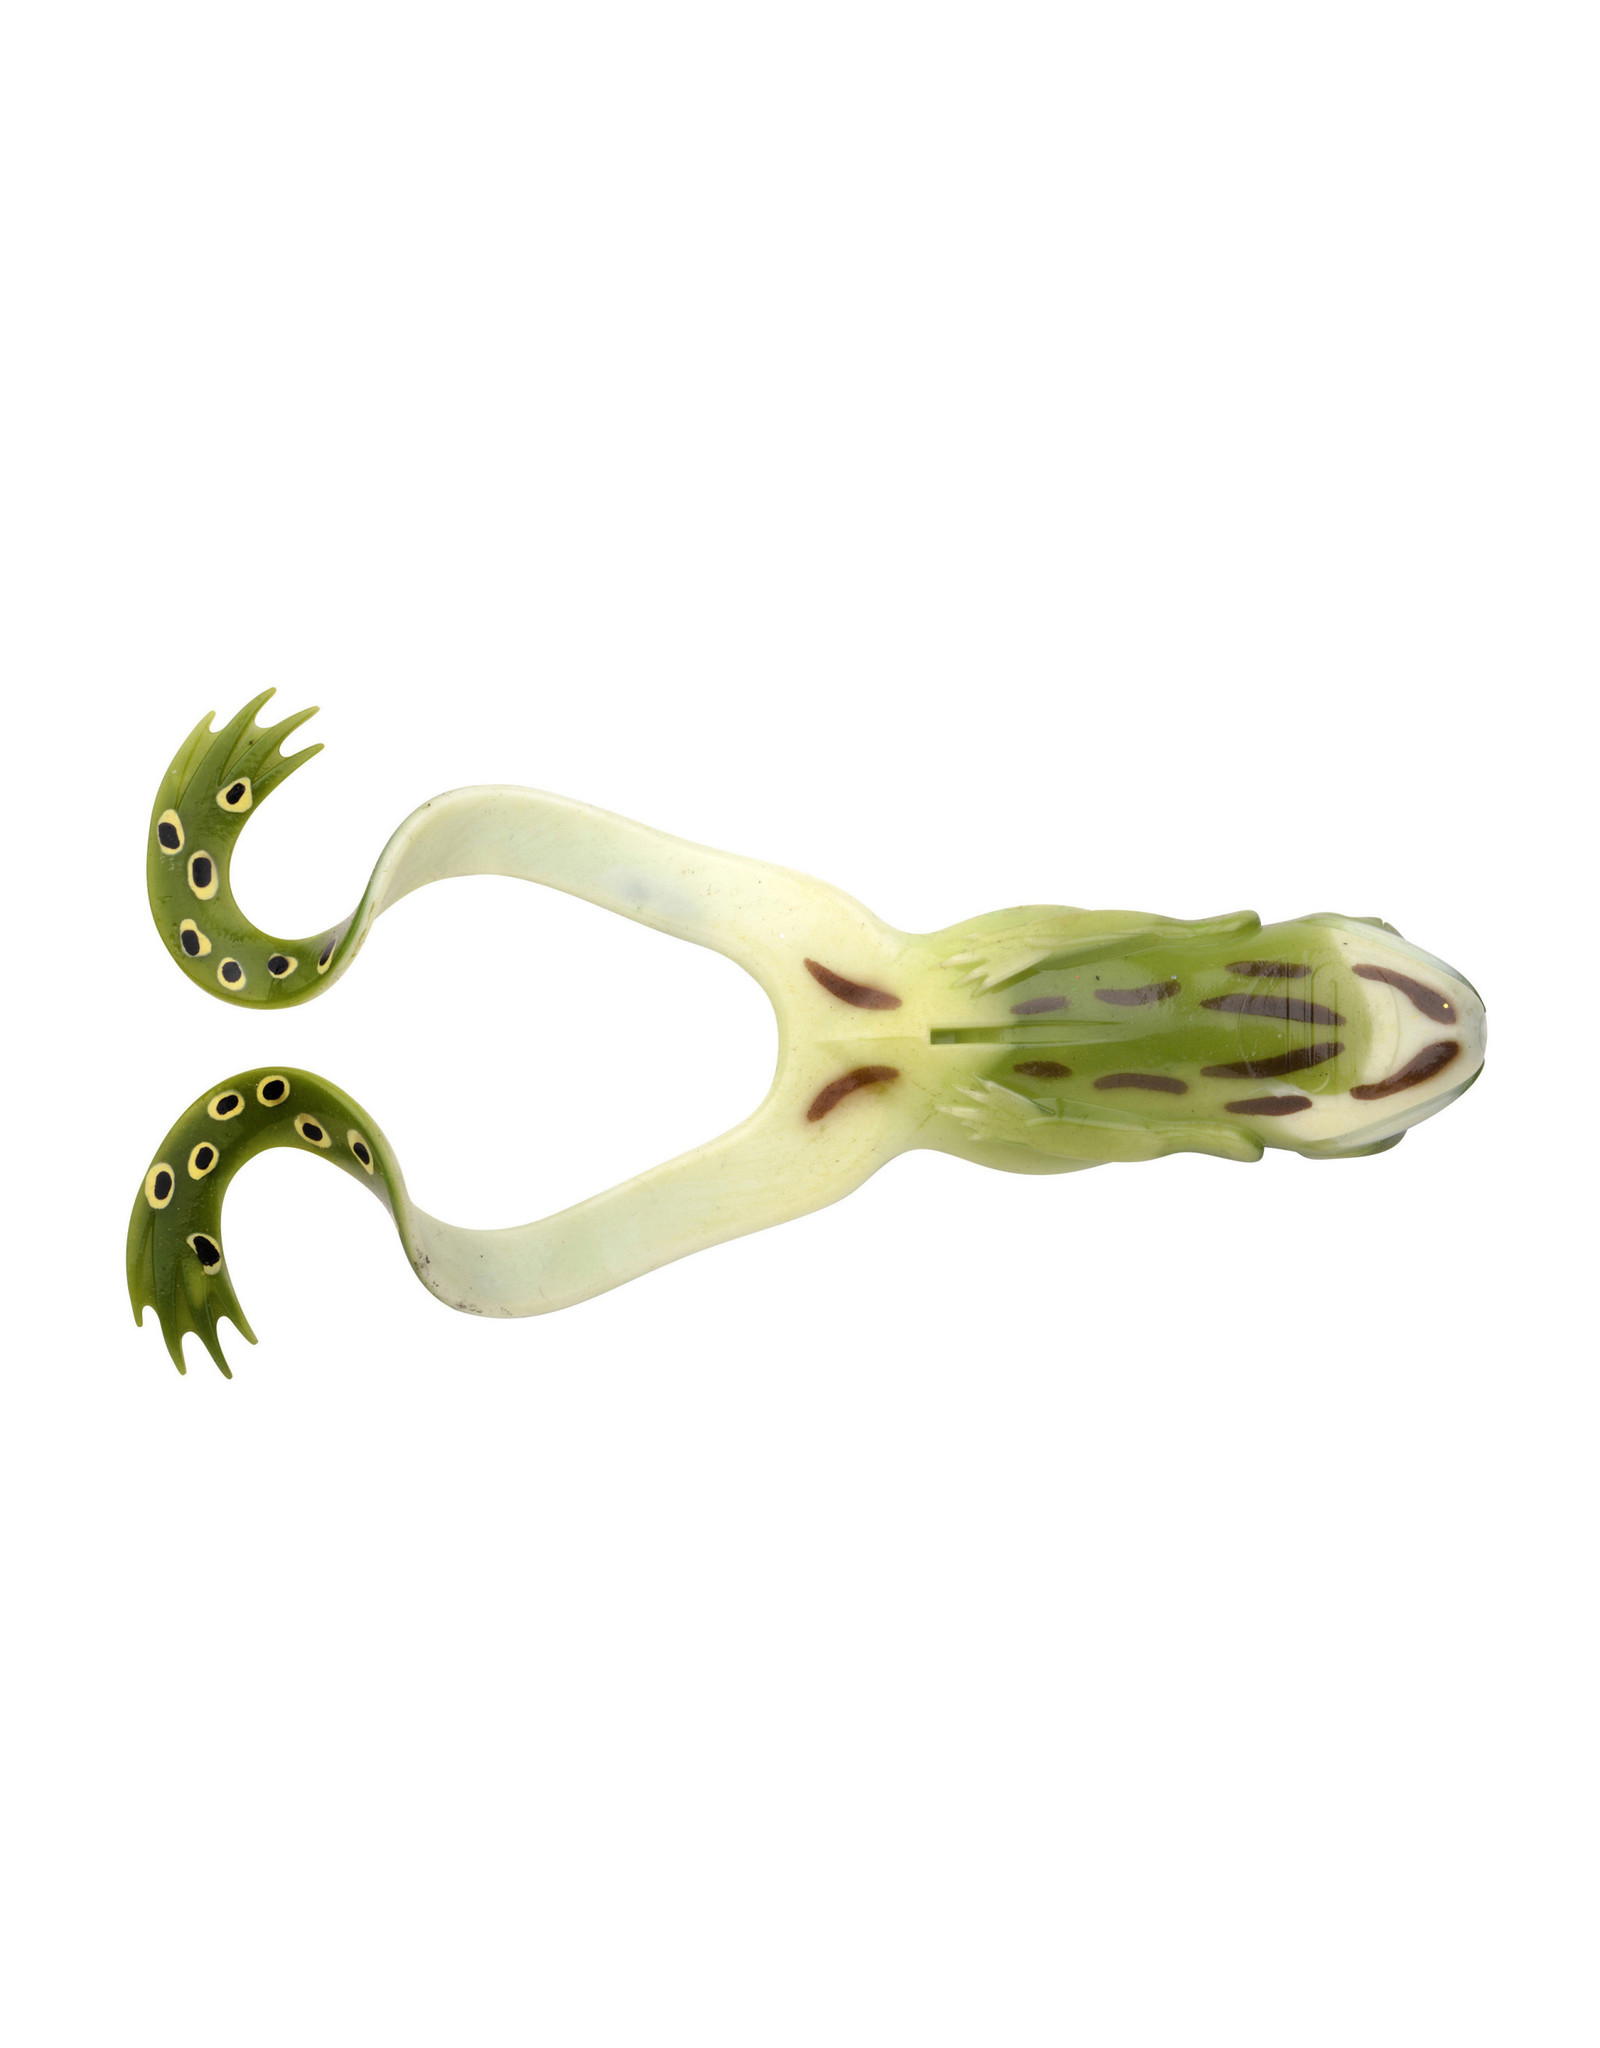 SPRO SPRO IRIS THE FROG 12CM NATUR GREEN FROG